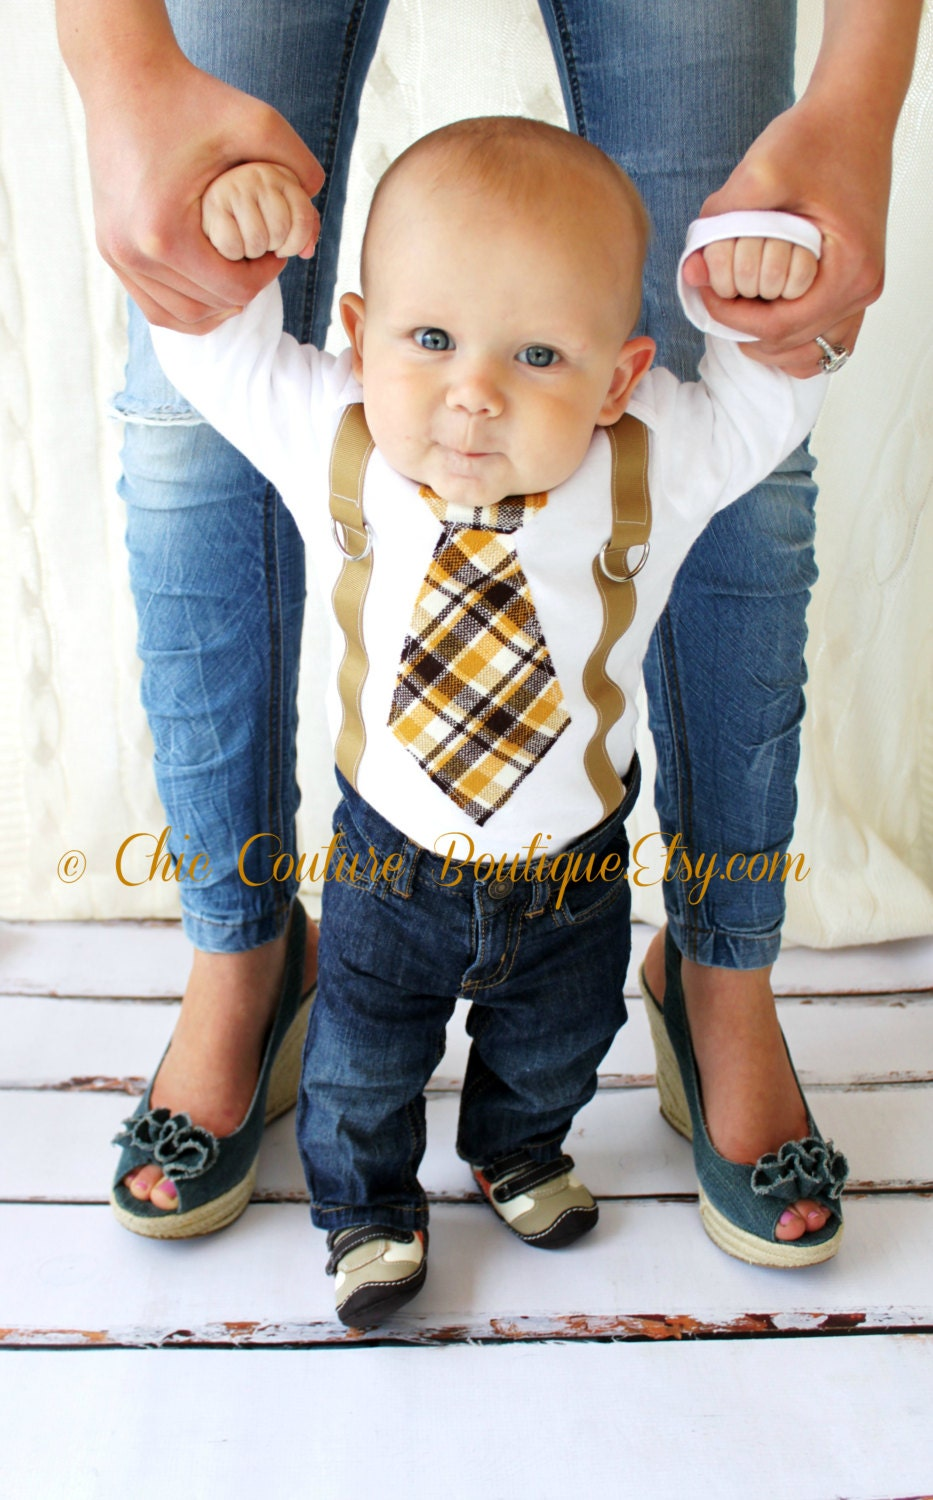 ... Plaid of Brown, Tan, Taupe, Orange, Mustard yellow Make Your Own: www.etsy.com/listing/73181090/baby-boy-tie-and-suspenders-bodysuit